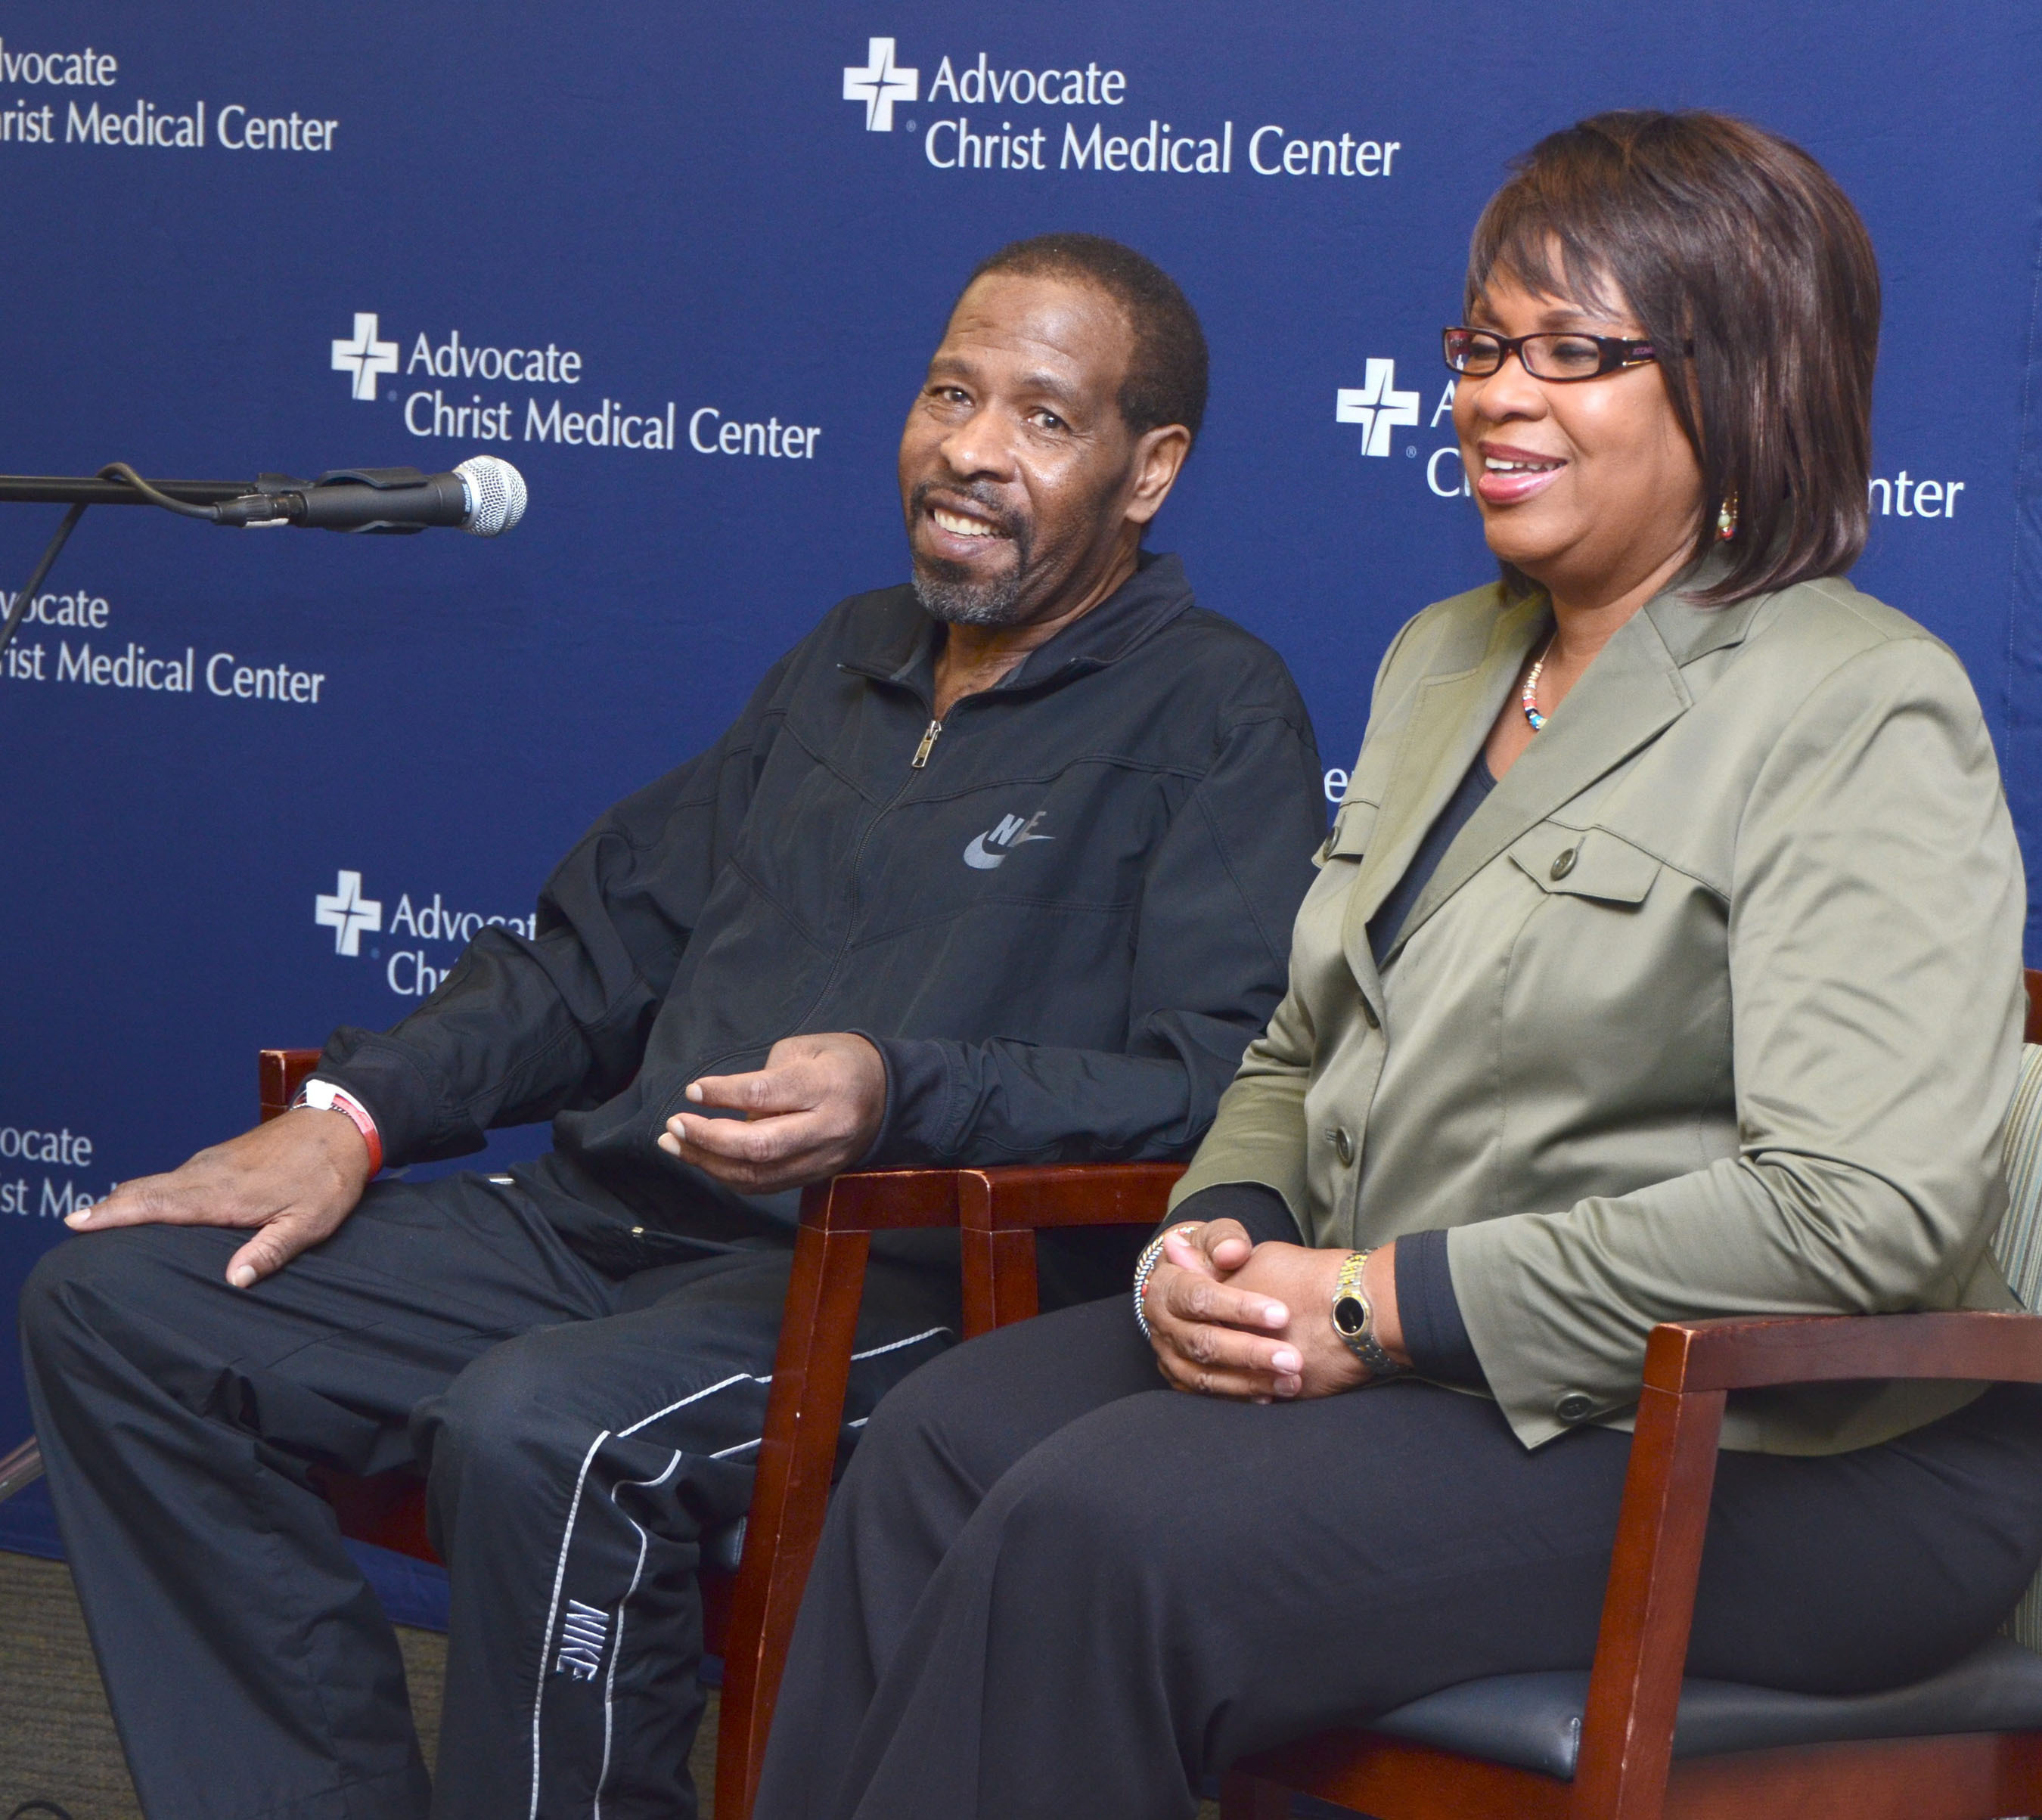 Leroy Haynes is the first SynCardia Total Artificial Heart patient in Illinois to be discharged from the hospital using the Freedom(R) portable driver. He and his wife of 42 years, Pat, spoke at a news conference held at Advocate Christ Medical Center on Sept. 13, 2012.  (PRNewsFoto/SynCardia Systems, Inc.)